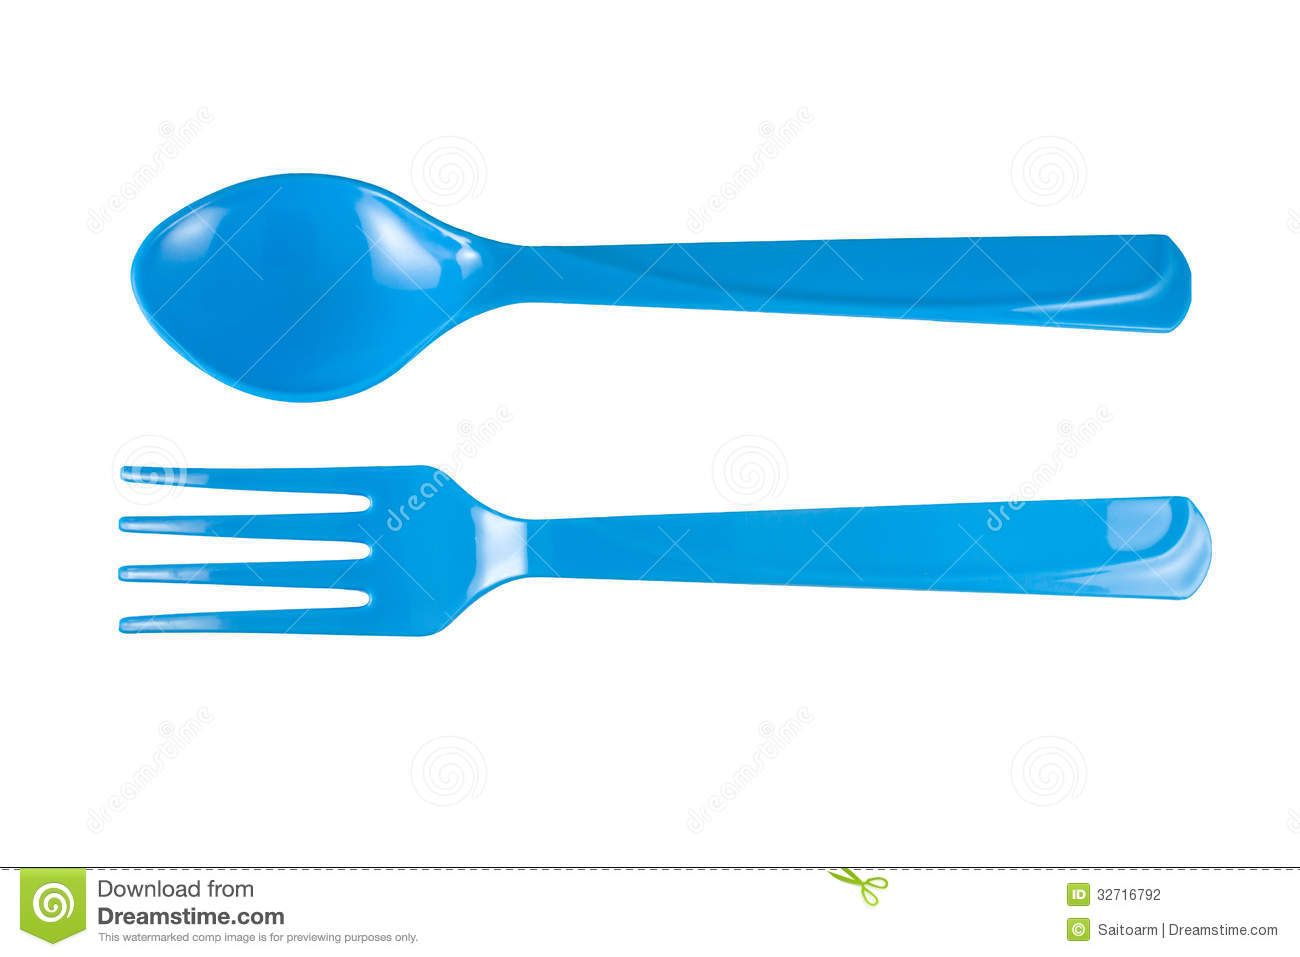 crossed fork and spoon clipart free clip art images rh pinterest com au spoon and fork clipart spoon and fork image clipart